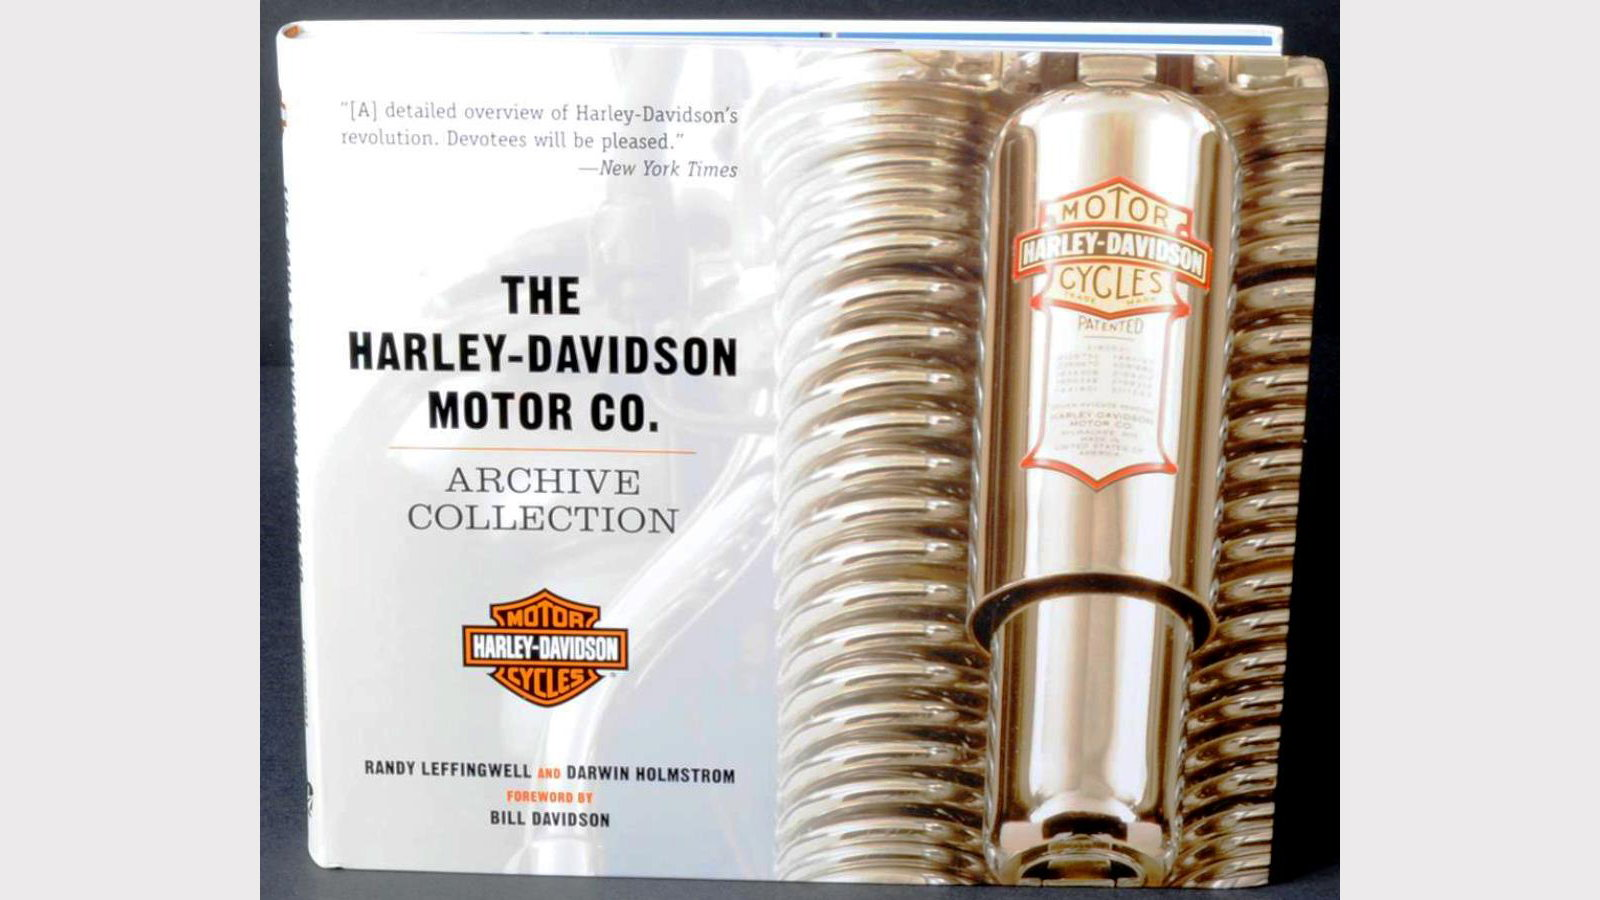 The Harley-Davidson Motor Co. Archive Collection - Darwin Holmstrom and Randy Leffingwell